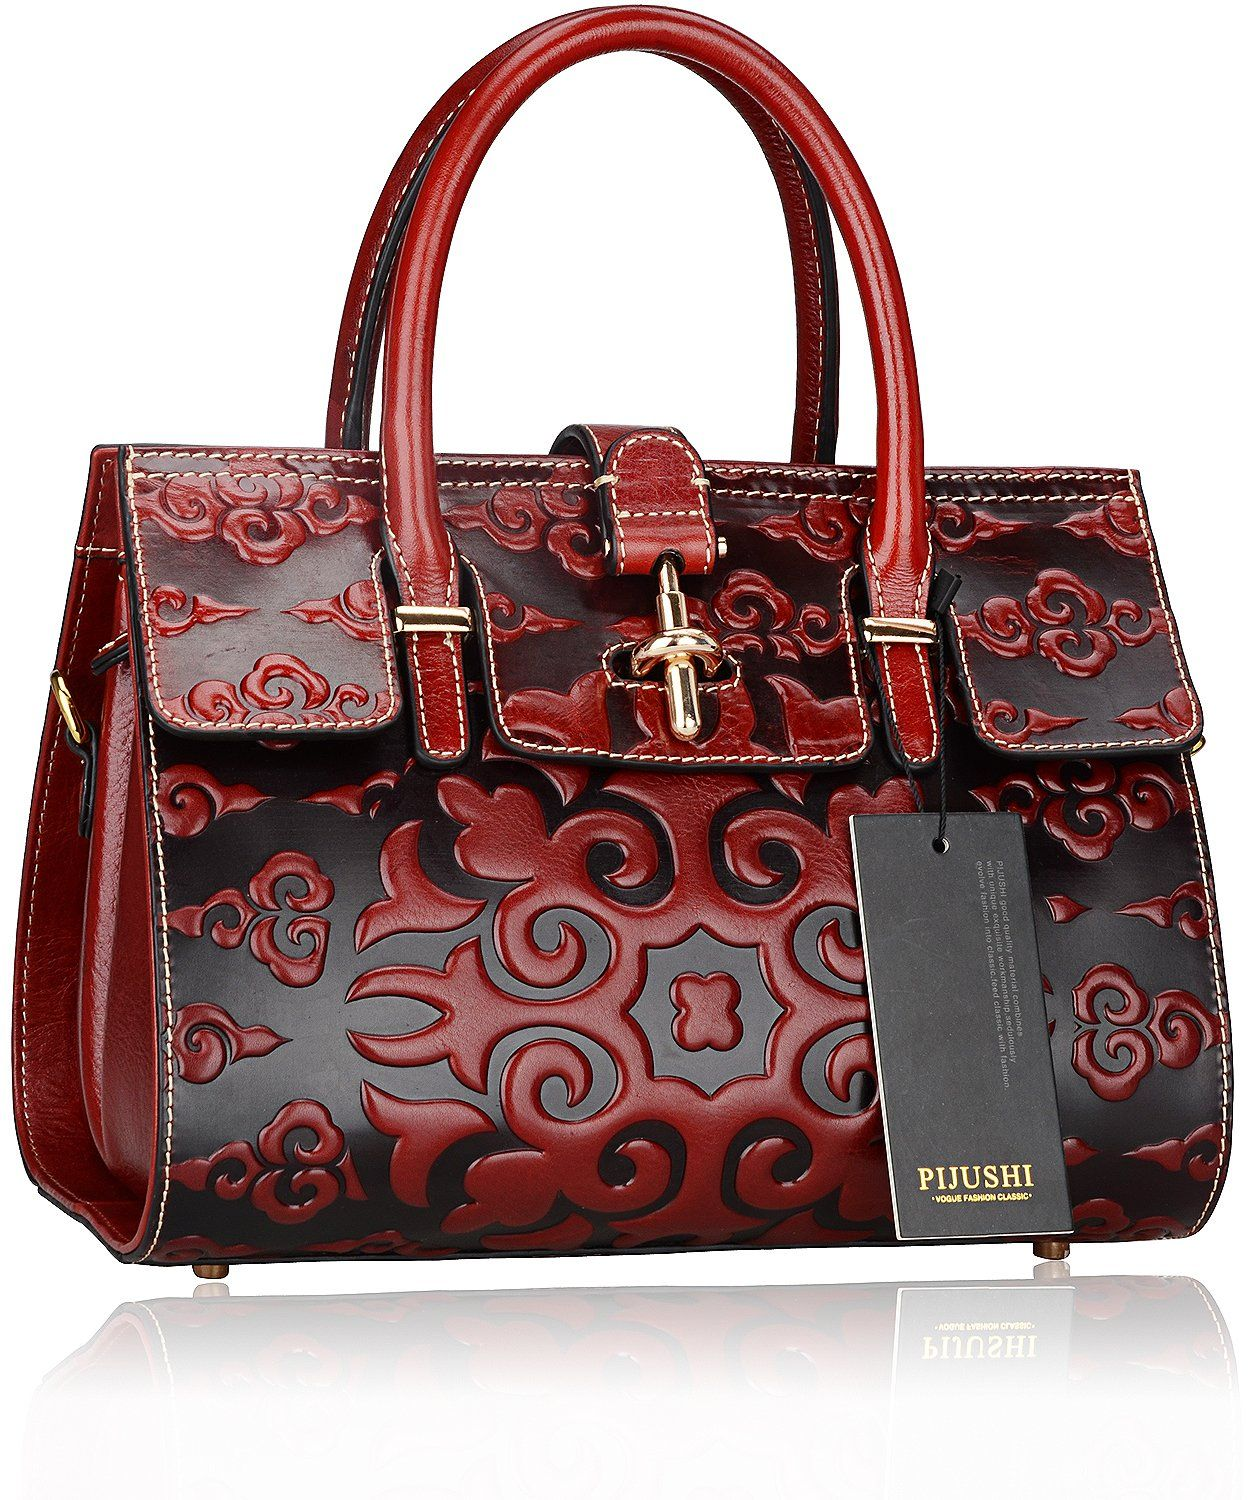 Pijushi Classic Ladies Embossed Floral Leather Tote Satchel Top Handle  Handbags 65098 (Red Luck Flower)  Handbags  AmazonSmile